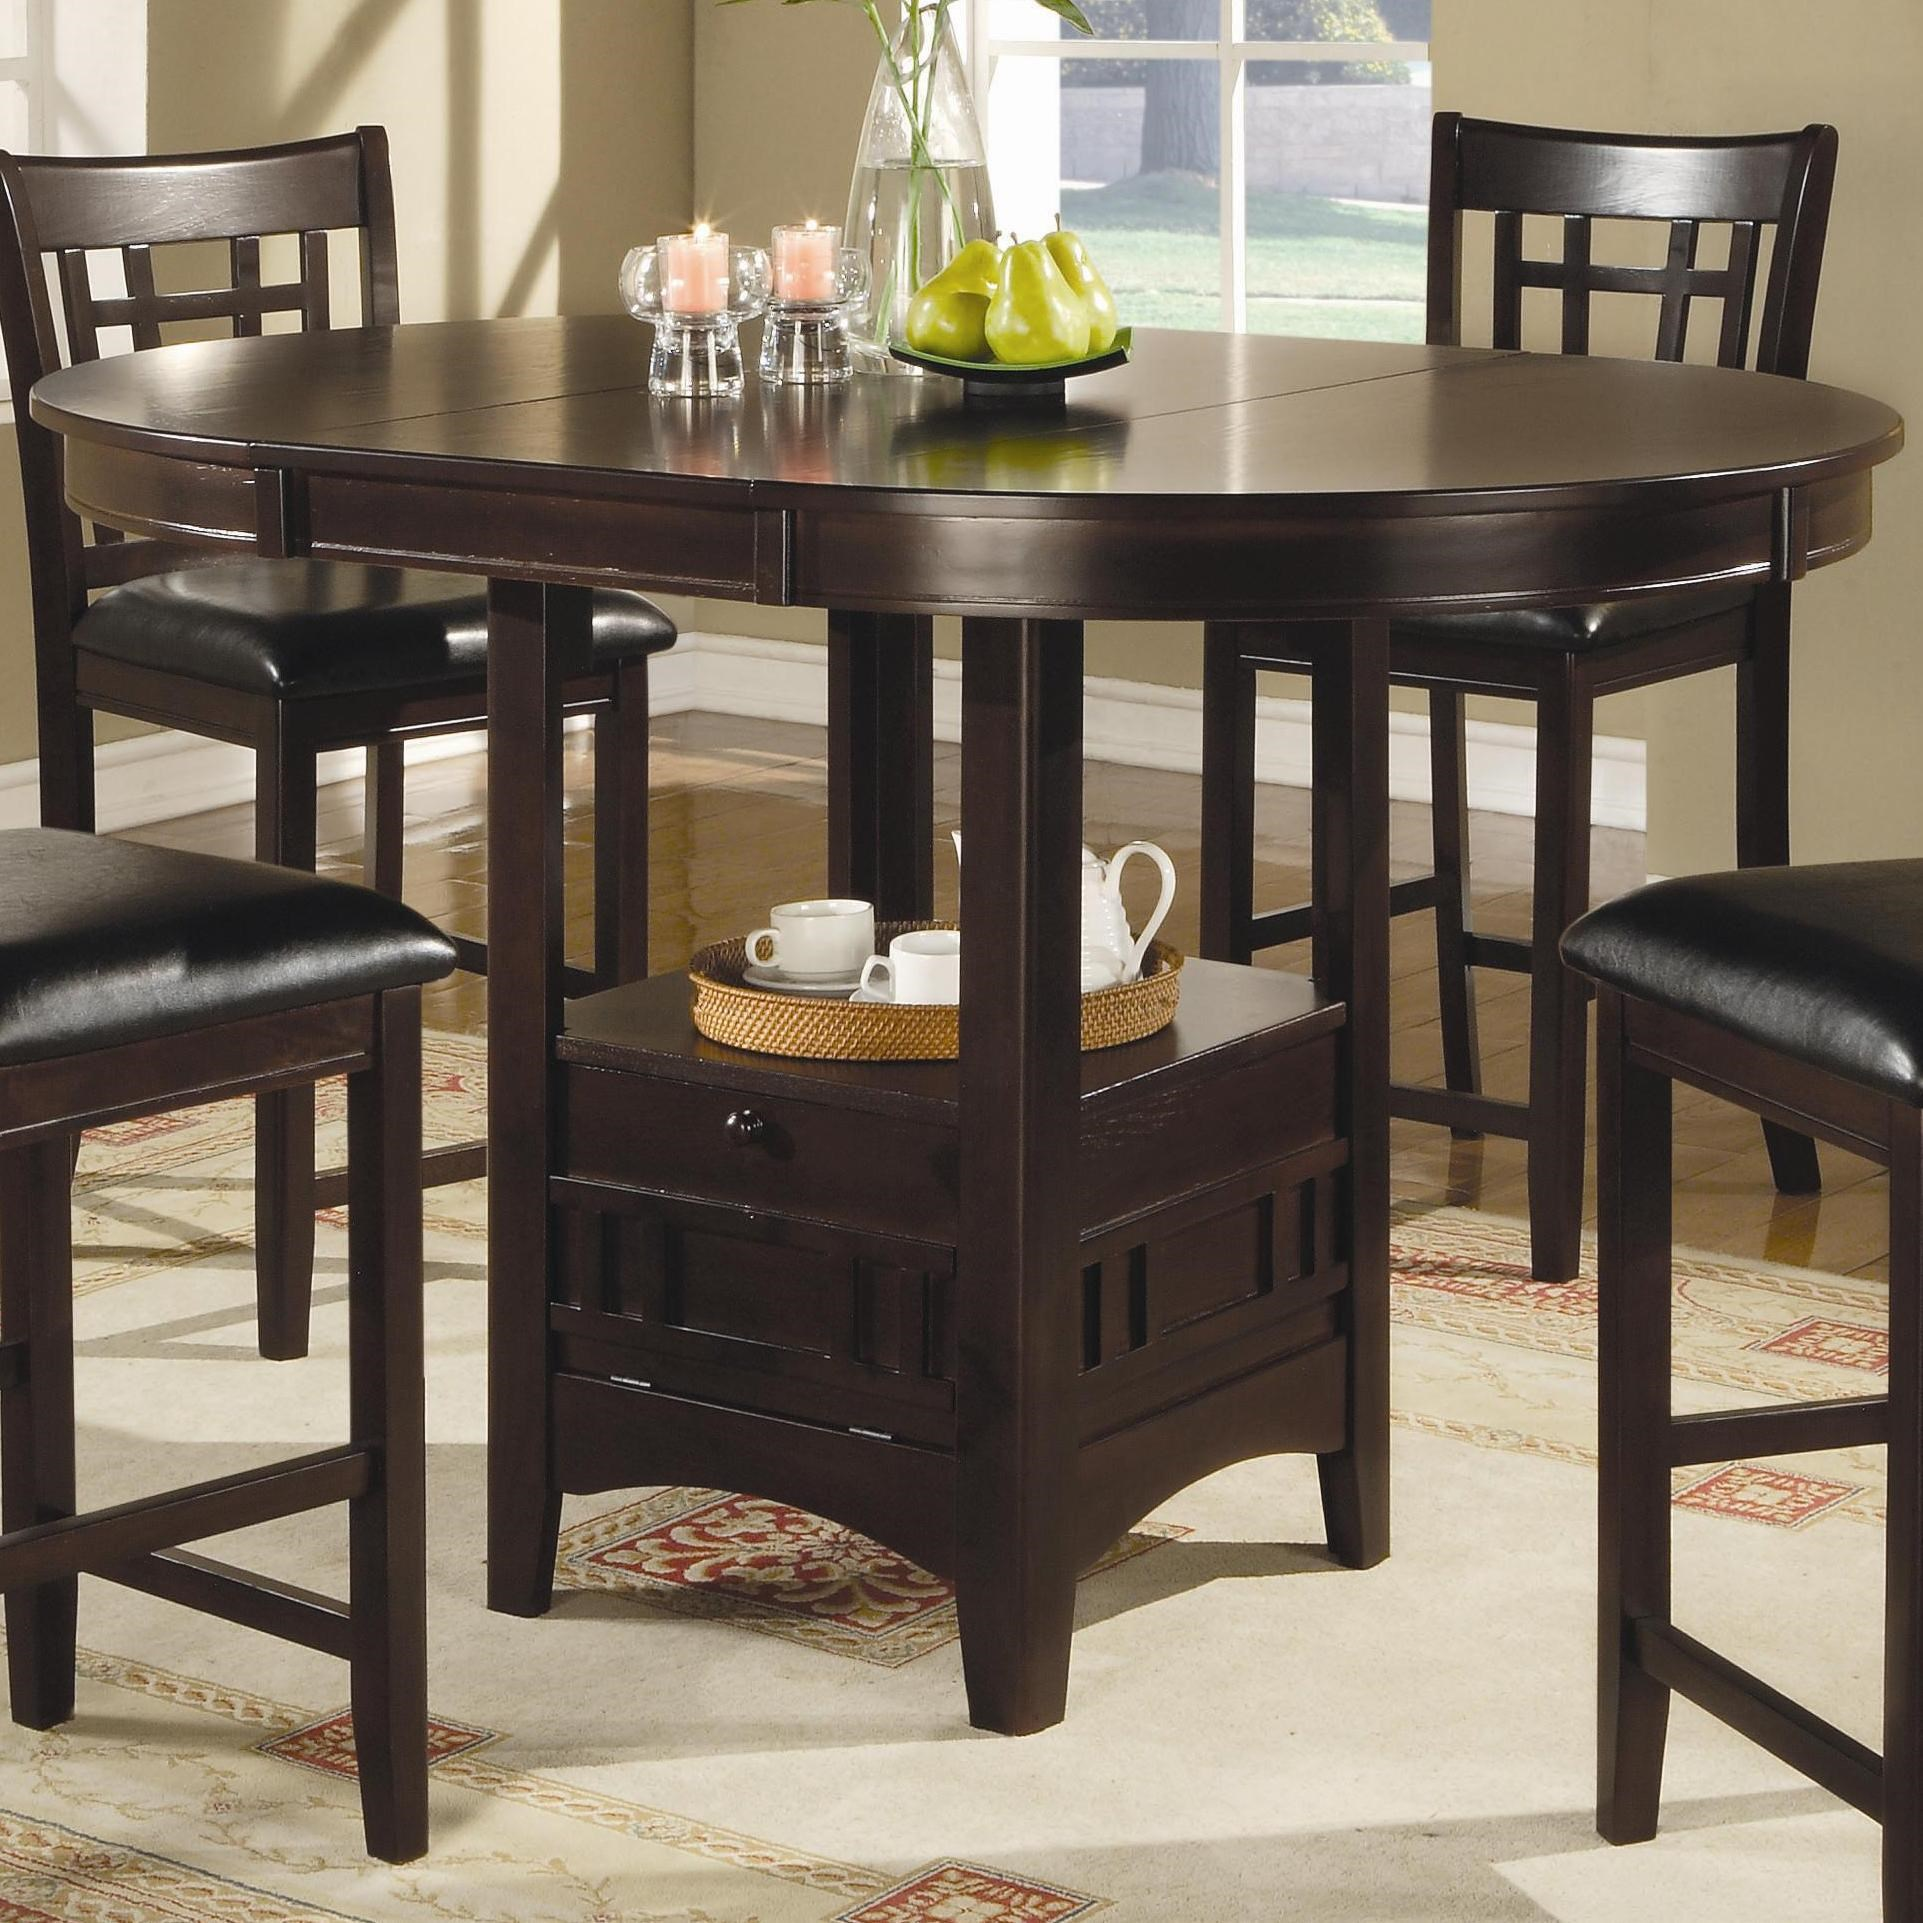 ... Pub Tables Coaster Lavon Counter Height Table. Coaster LavonCounter  Height Table ...